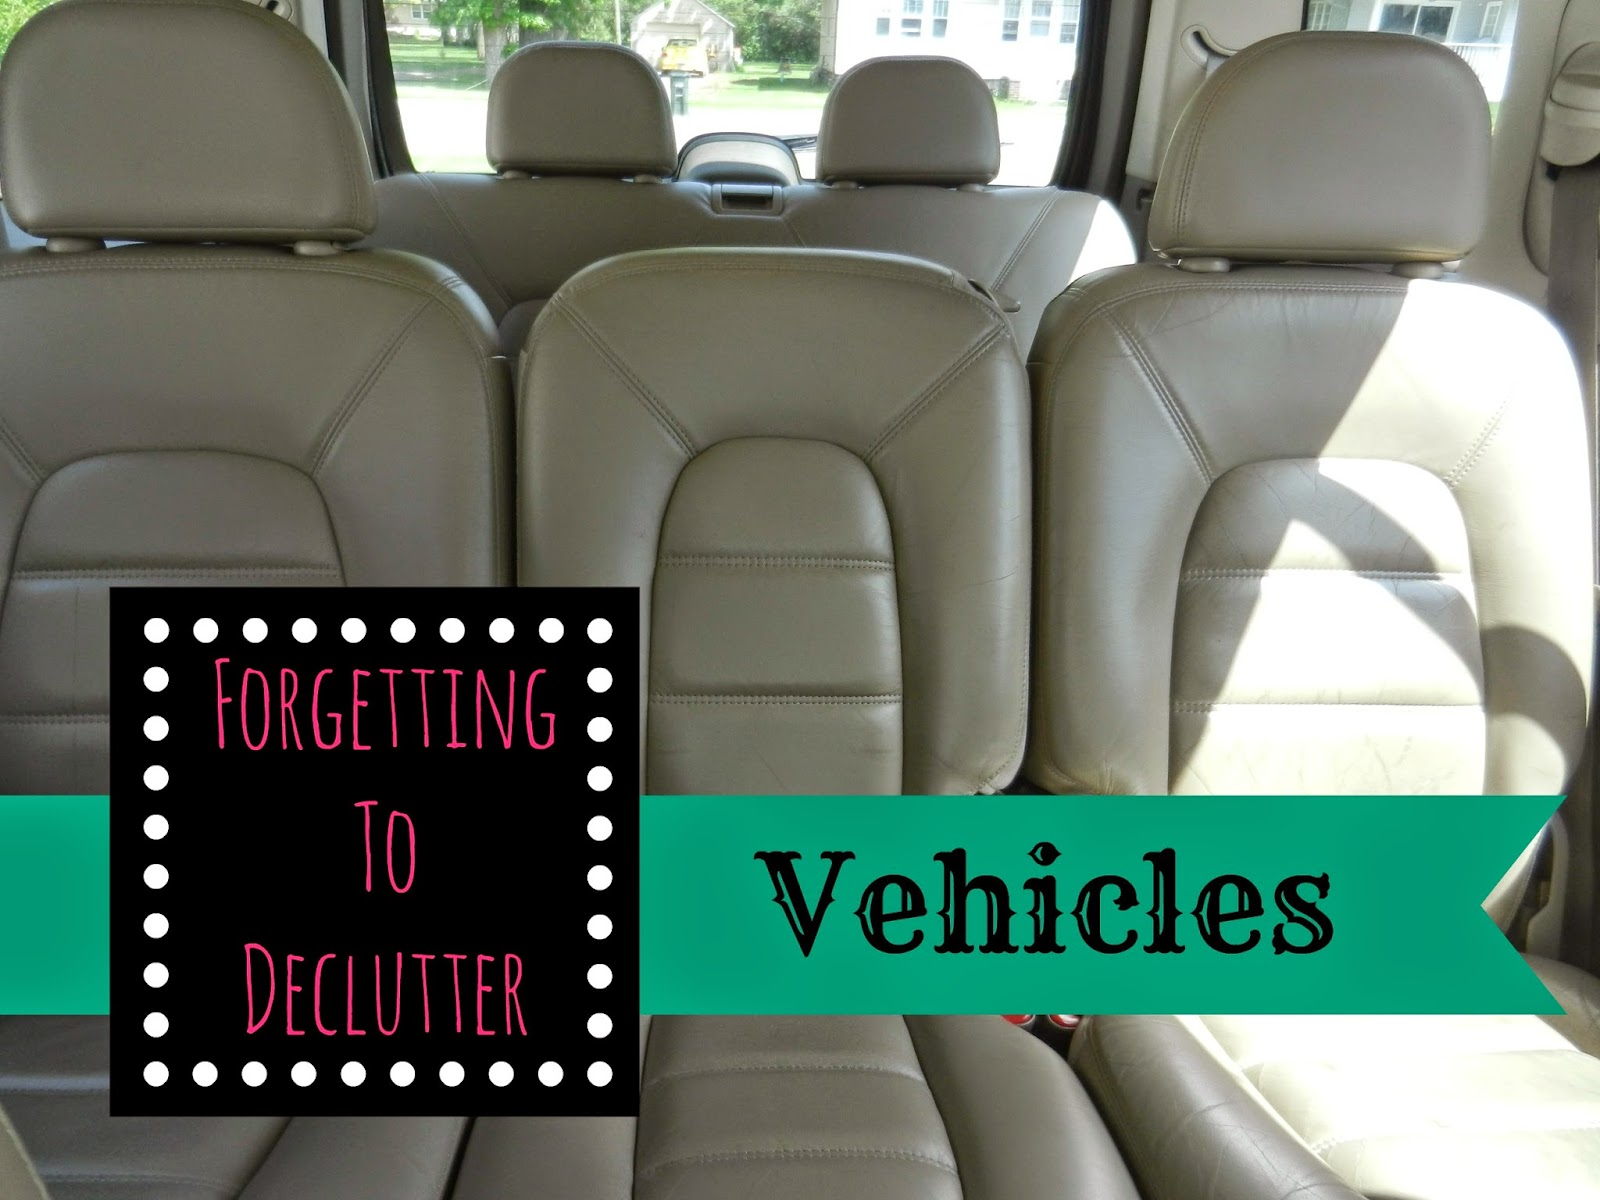 Forgetting to Declutter: Vehicles